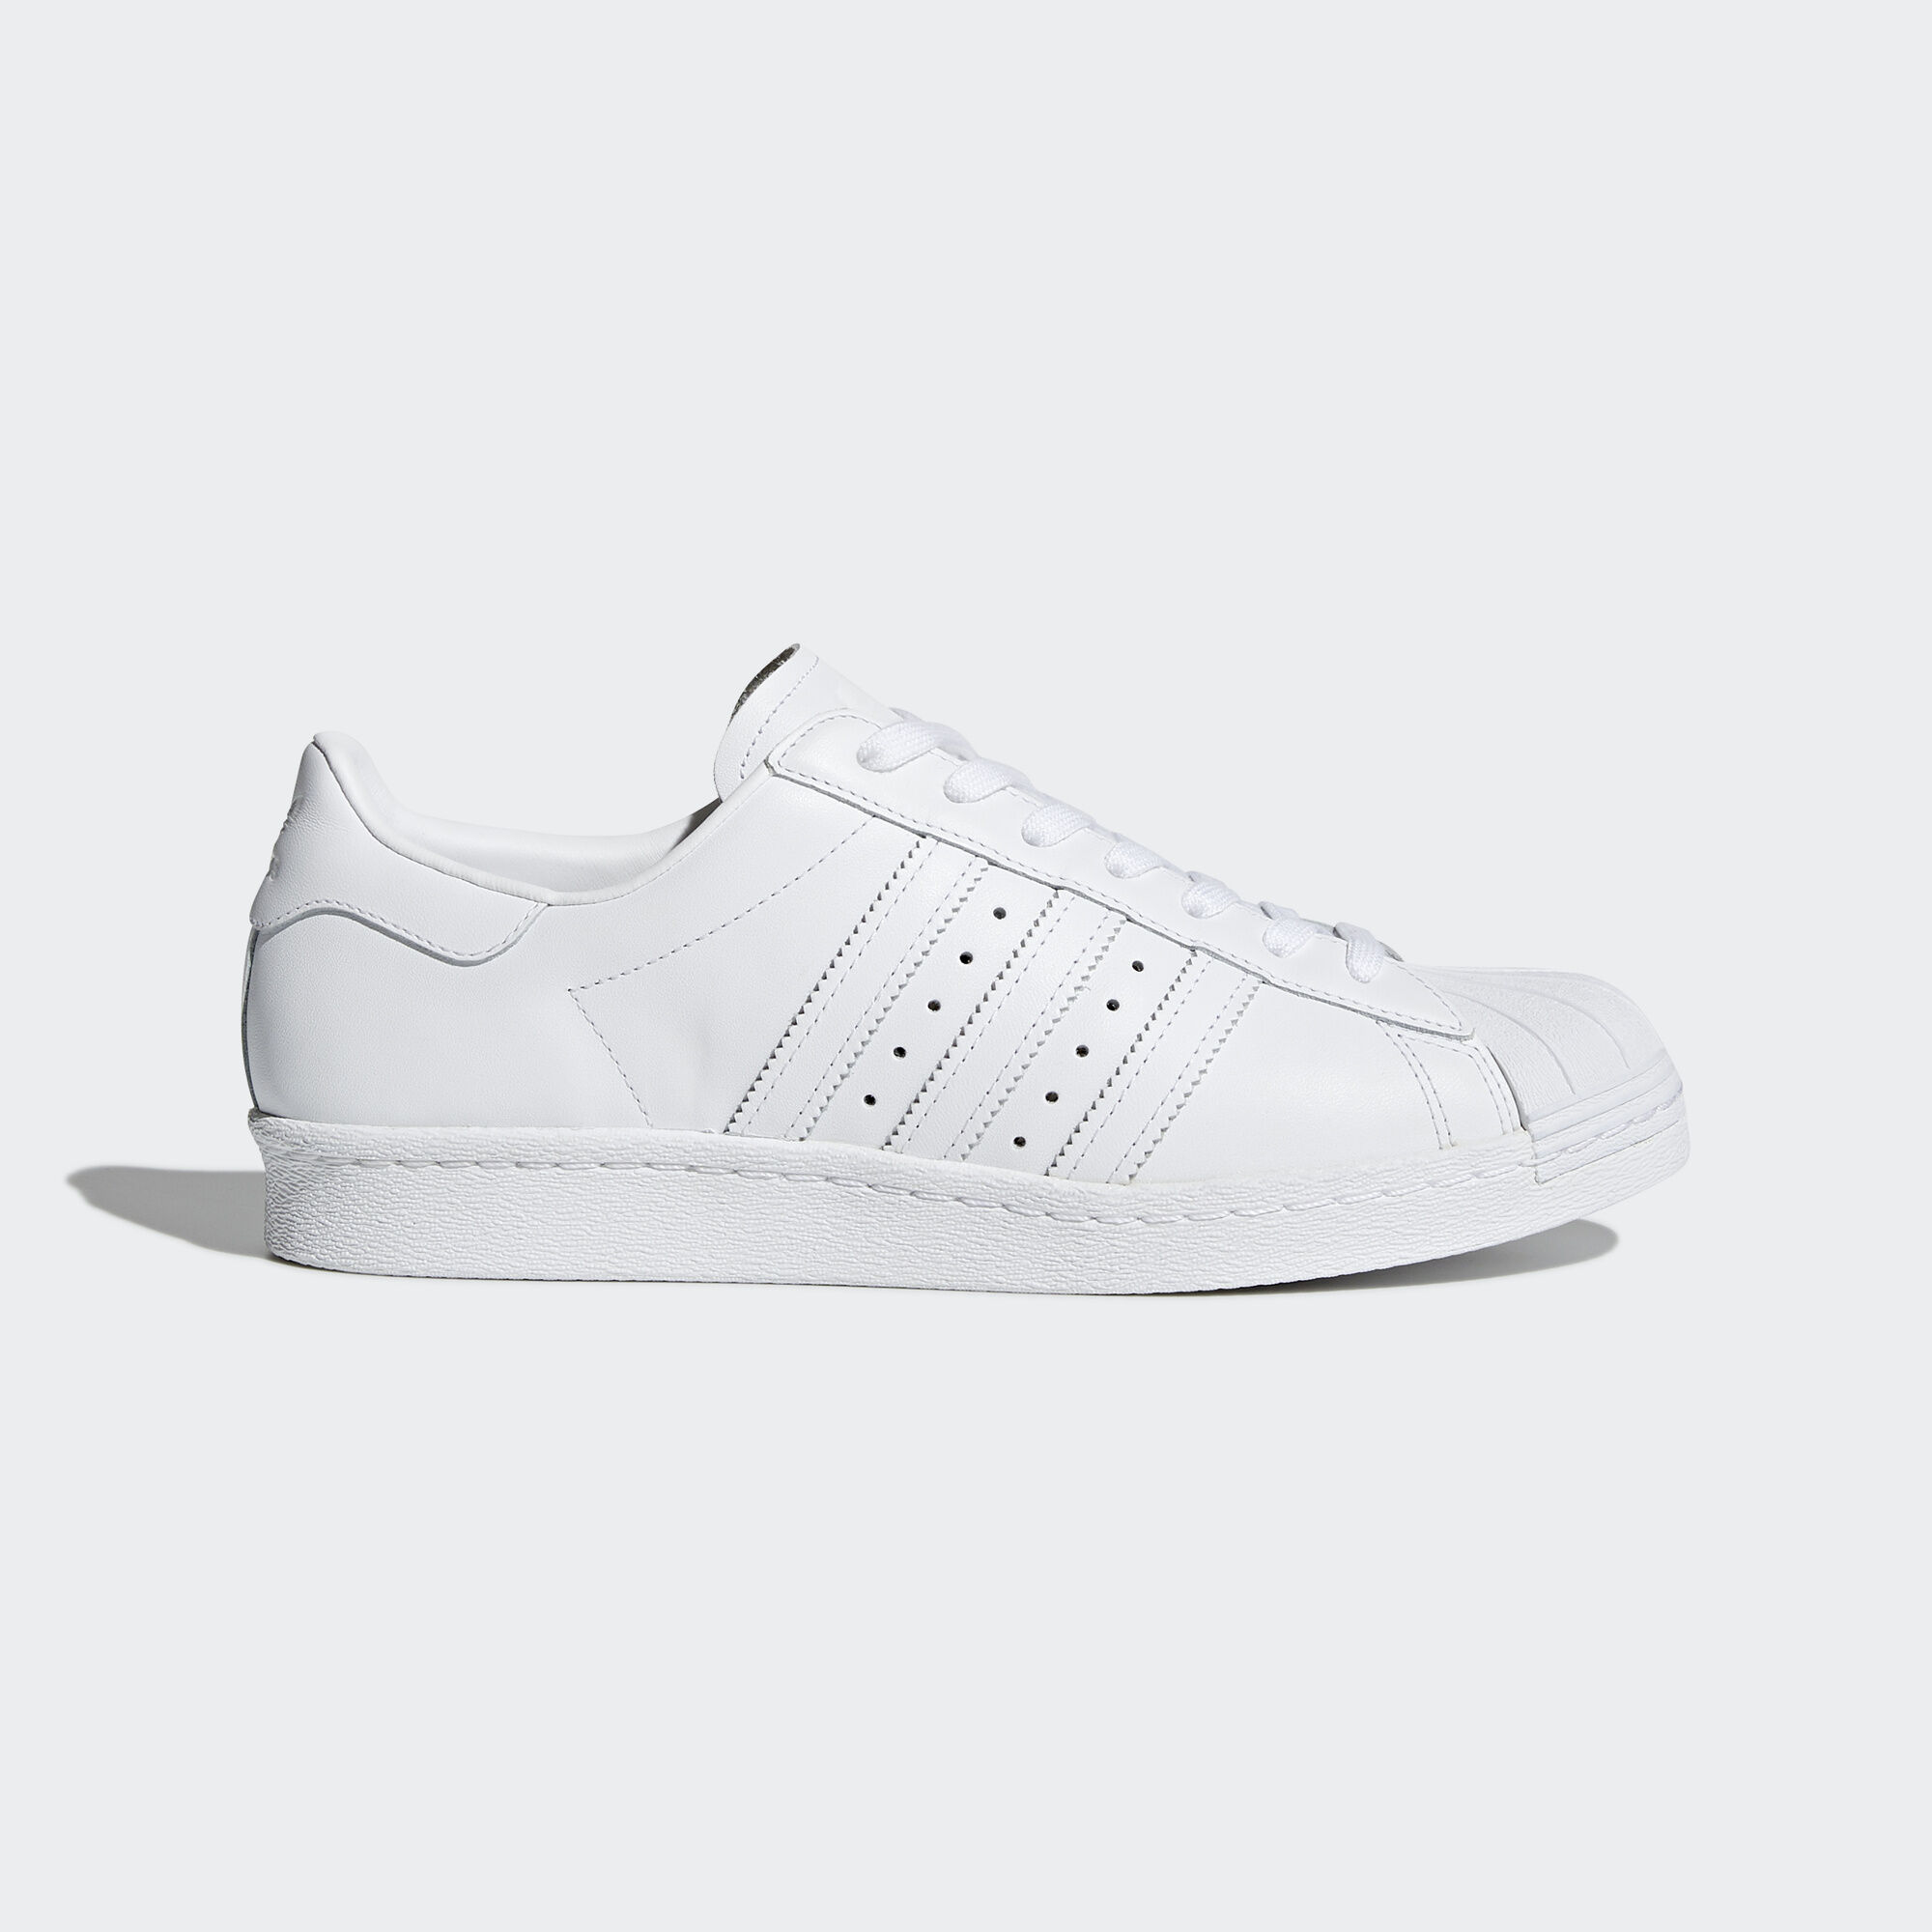 image: adidas superstar [9]